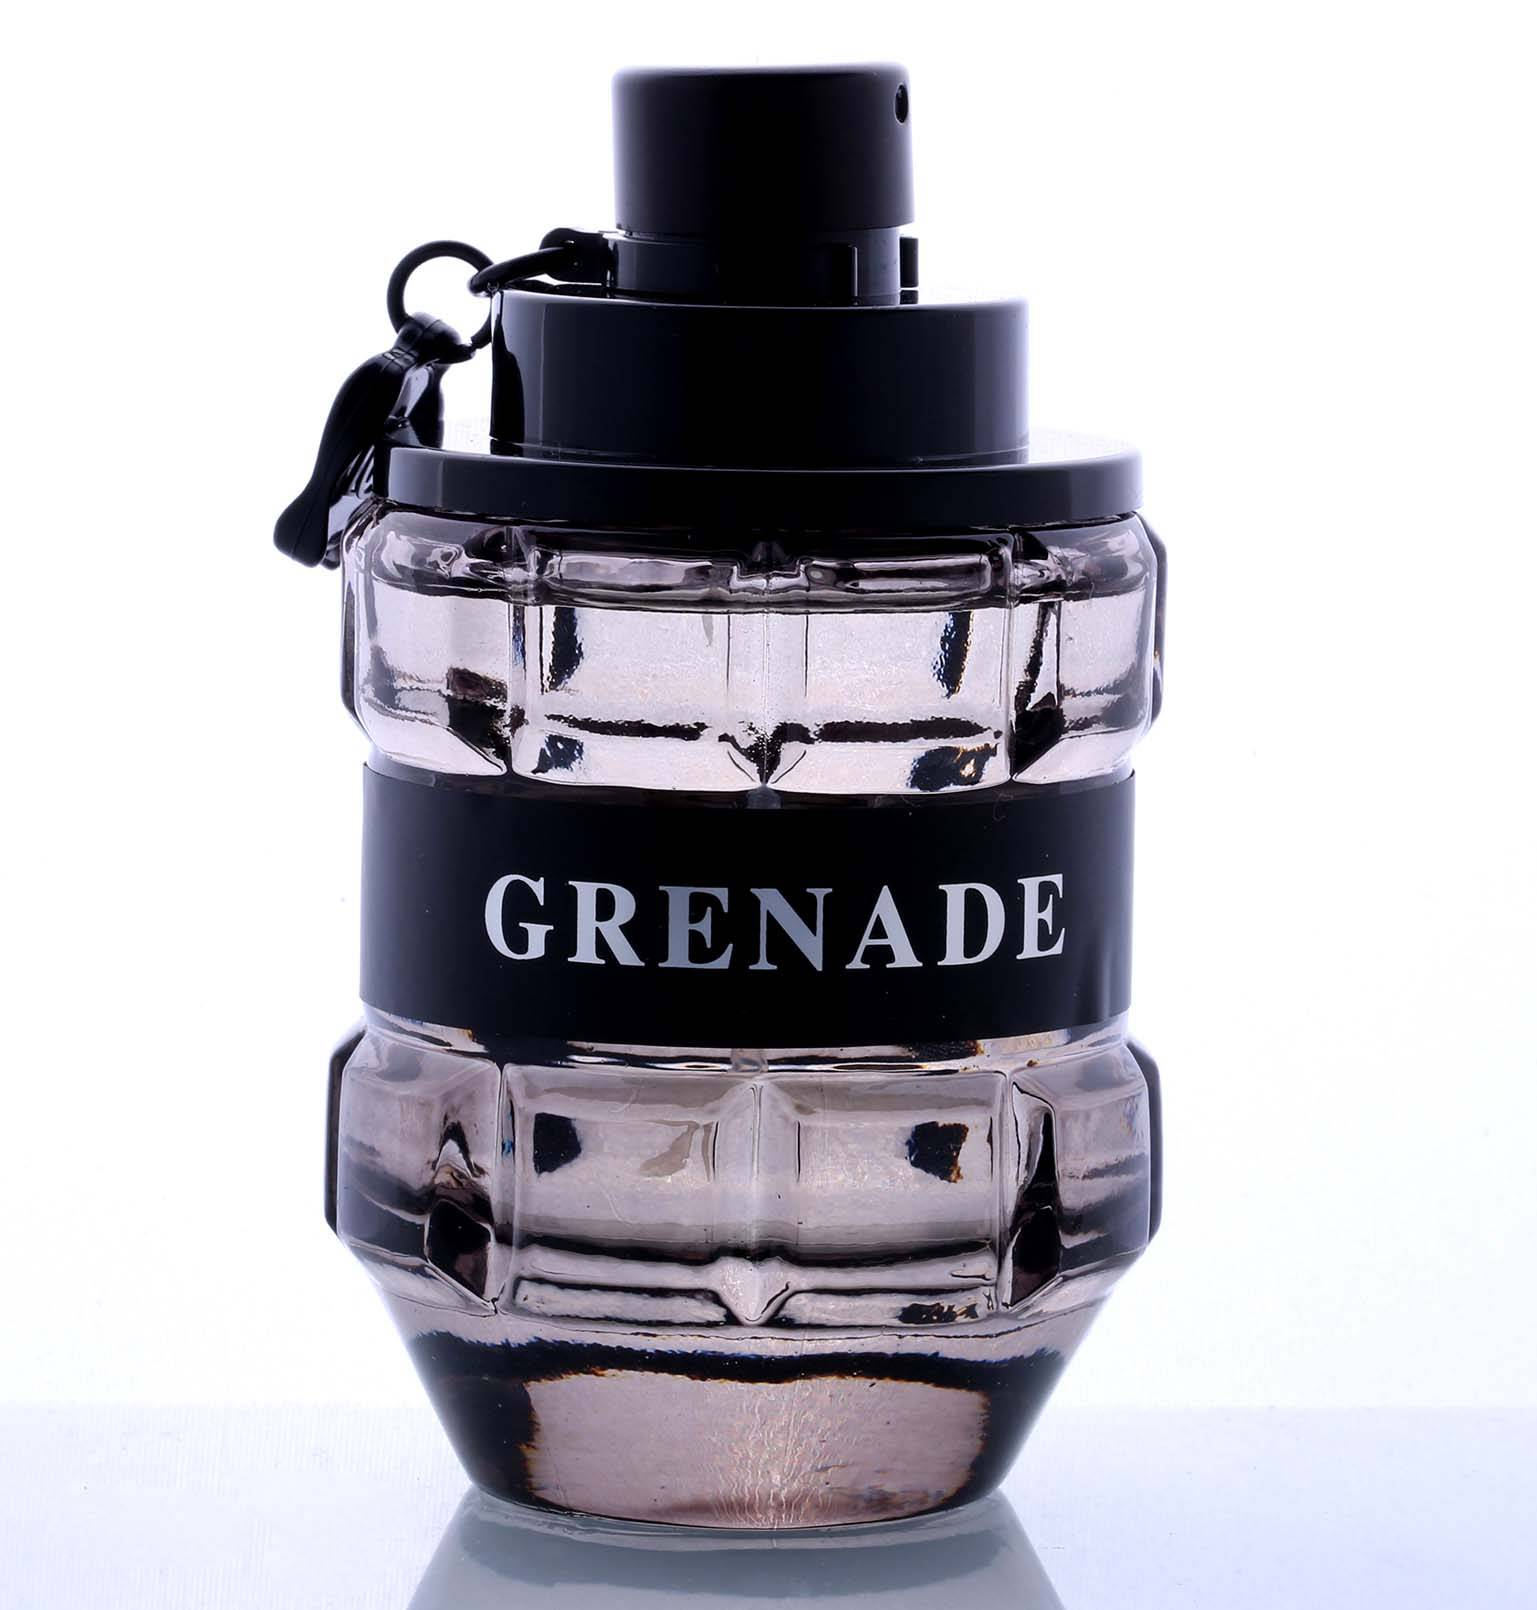 Grenade style high staying power Perfume for men masculine scents